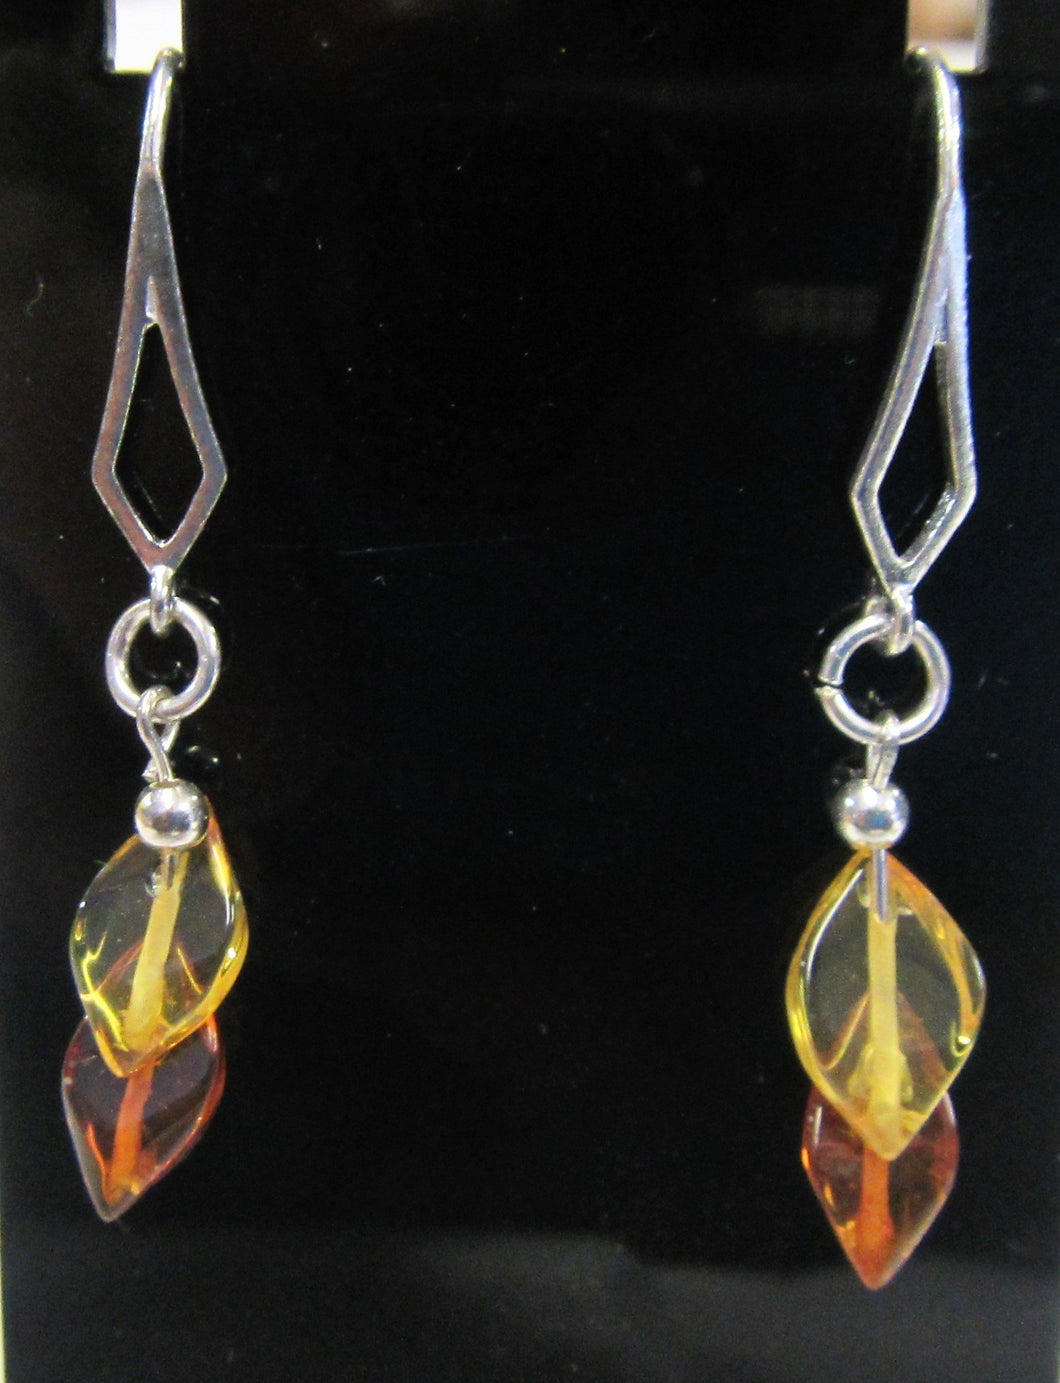 Handcrafted Amber leaf stone earrings on 925 sterling silver hooks